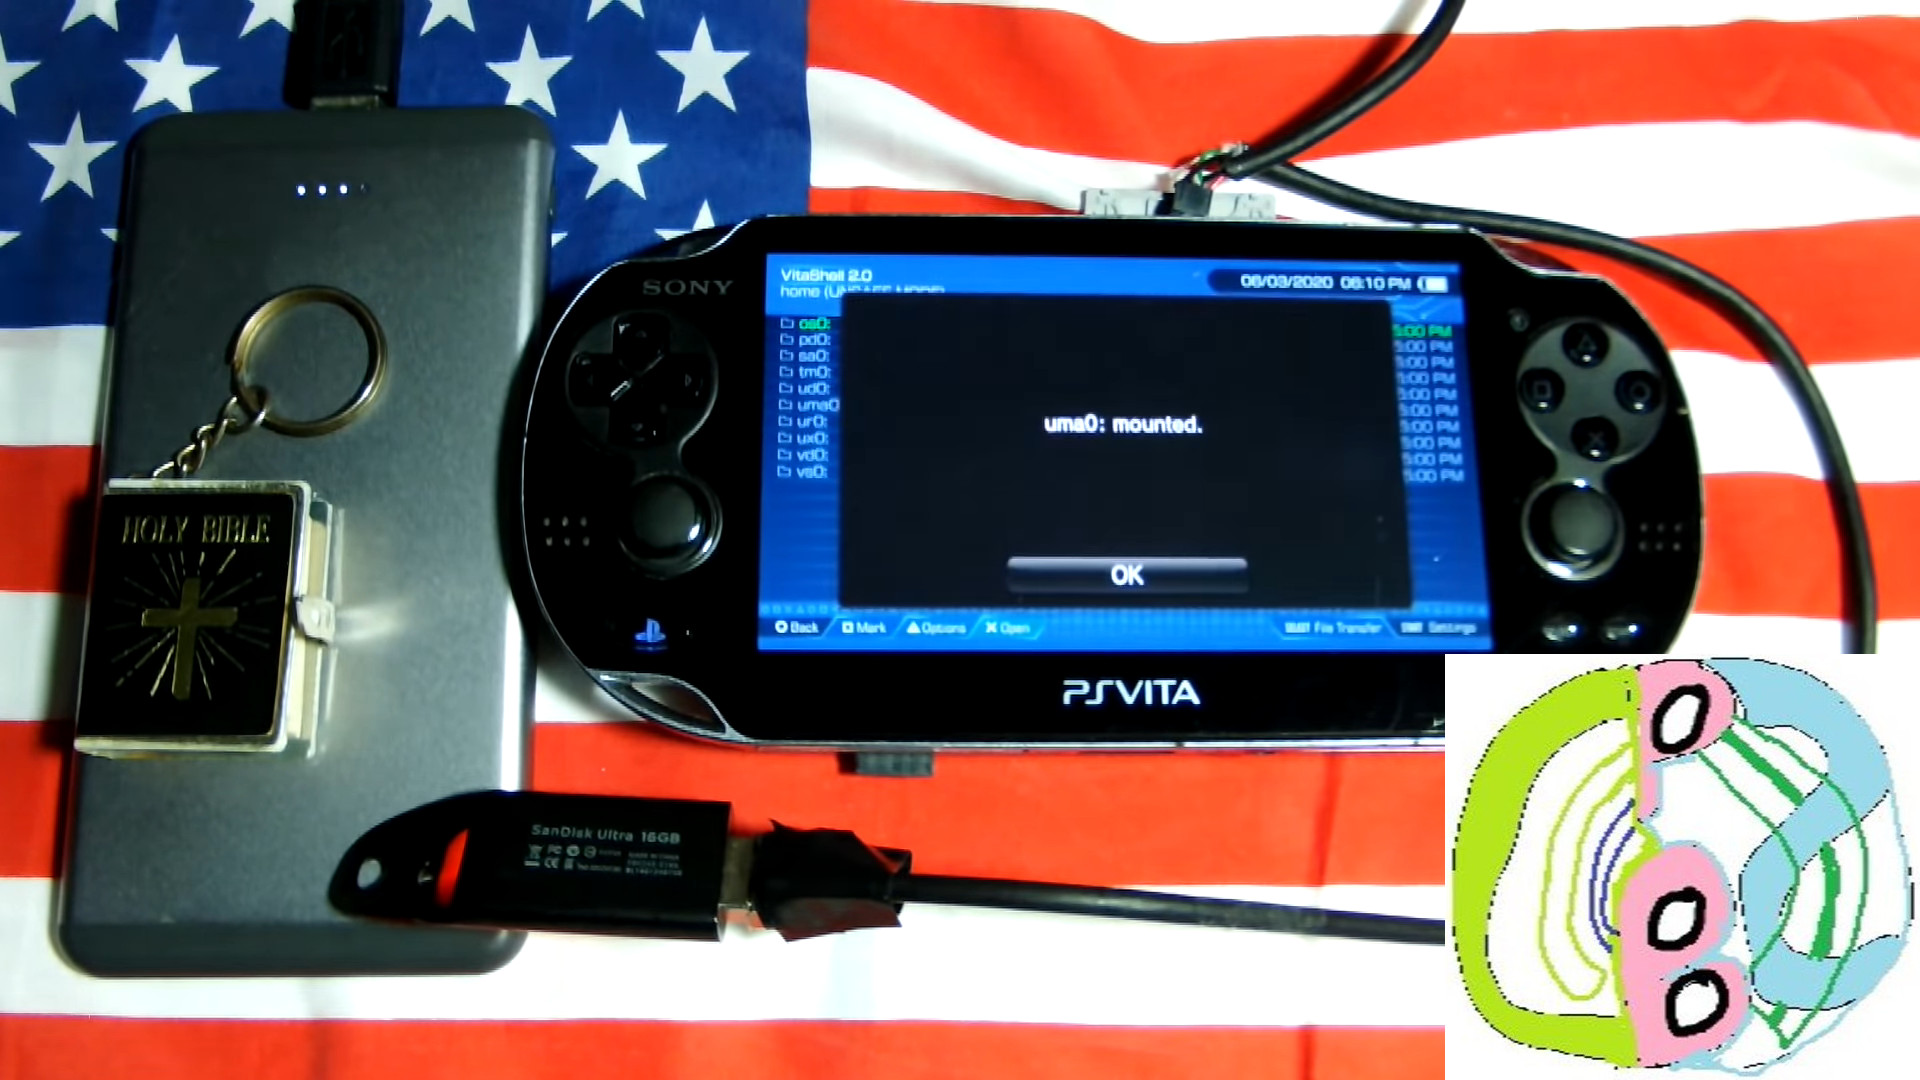 Psvita News A Summary Of State Of Cbps Many Releases For The Vita Unveiling Cbpsdb Together With Attempts To Use Vita Mystery Port Slim S Micro Usb Port For External Storage